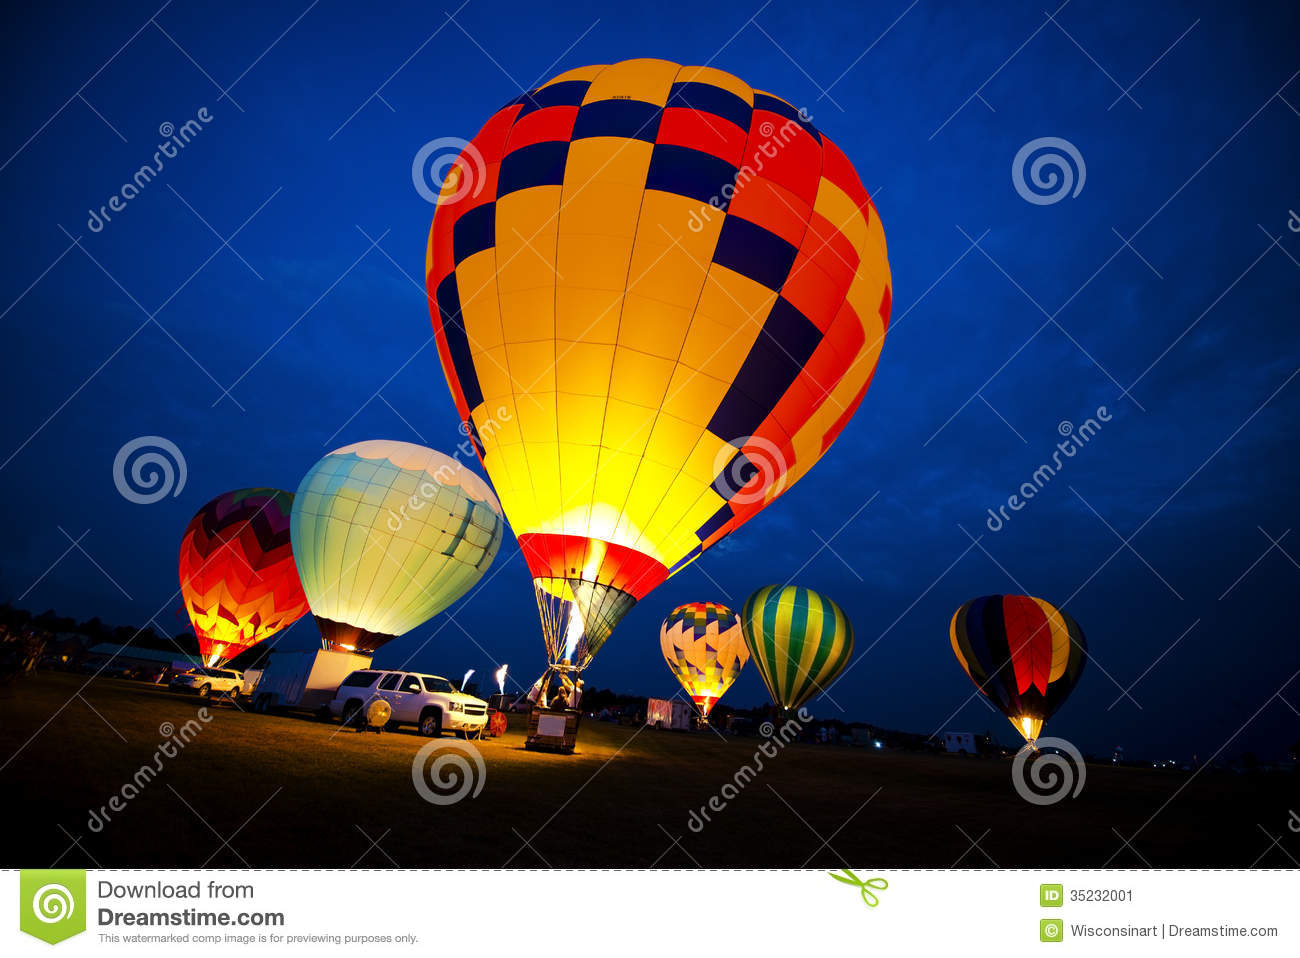 Good Wallpaper Night Hot Air Balloon - hot-air-balloon-colors-evening-night-glow-light-show-group-balloons-lit-up-as-fire-up-each-shines-bright-35232001  Pic-376016.jpg